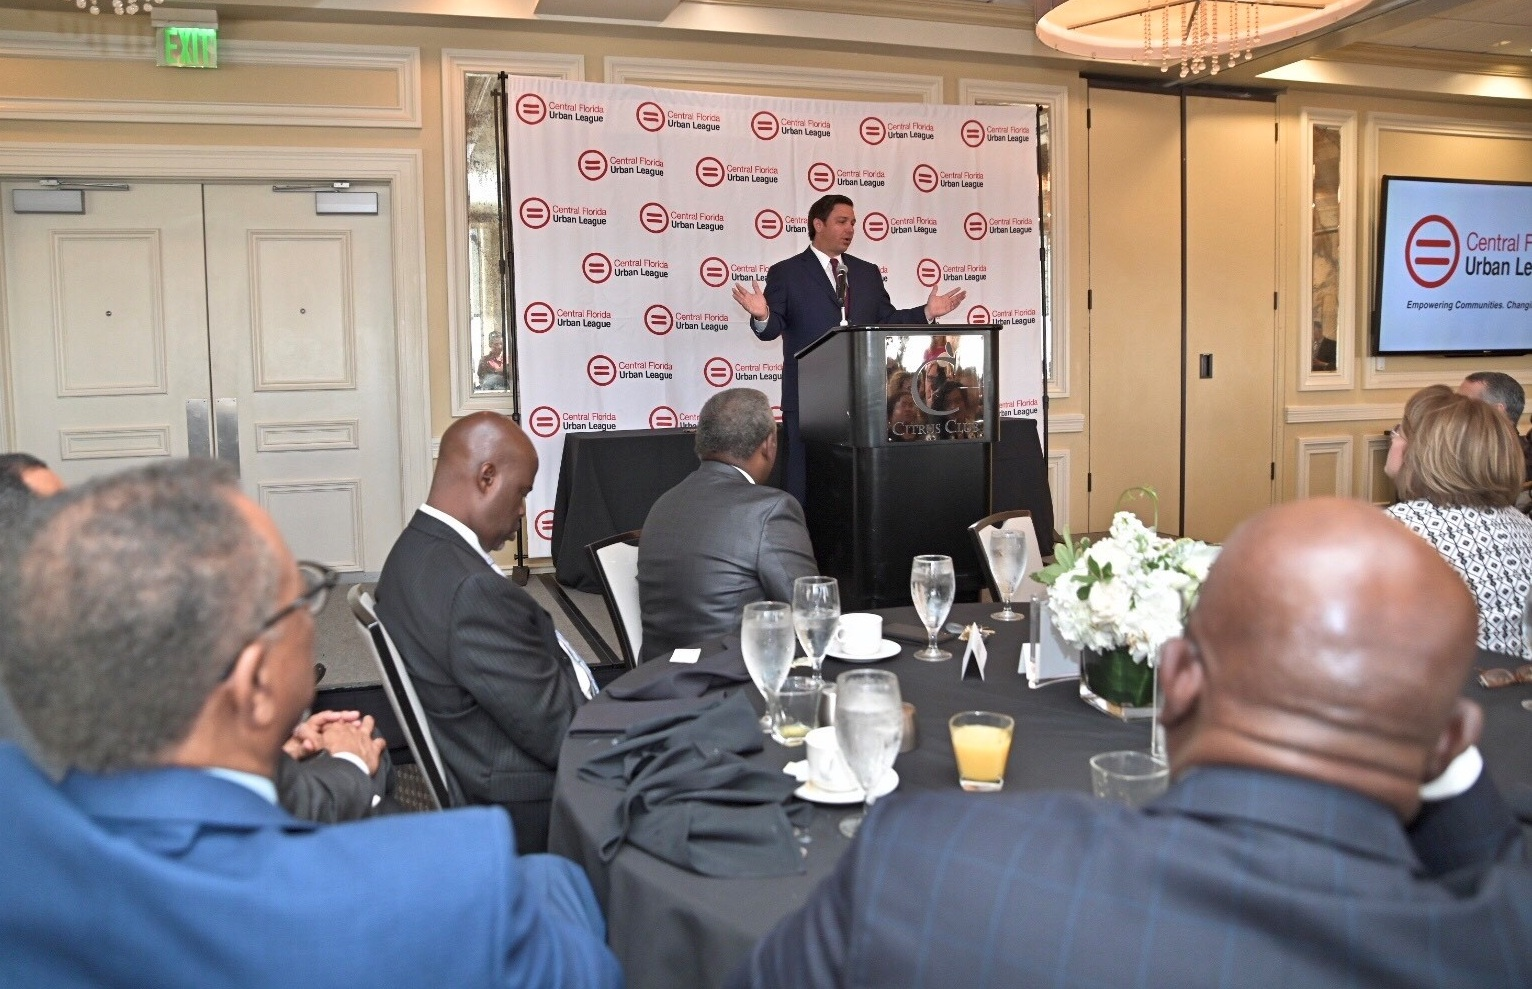 News - Gov attends Urban League Black history month breakfast - Picture 3.jpg